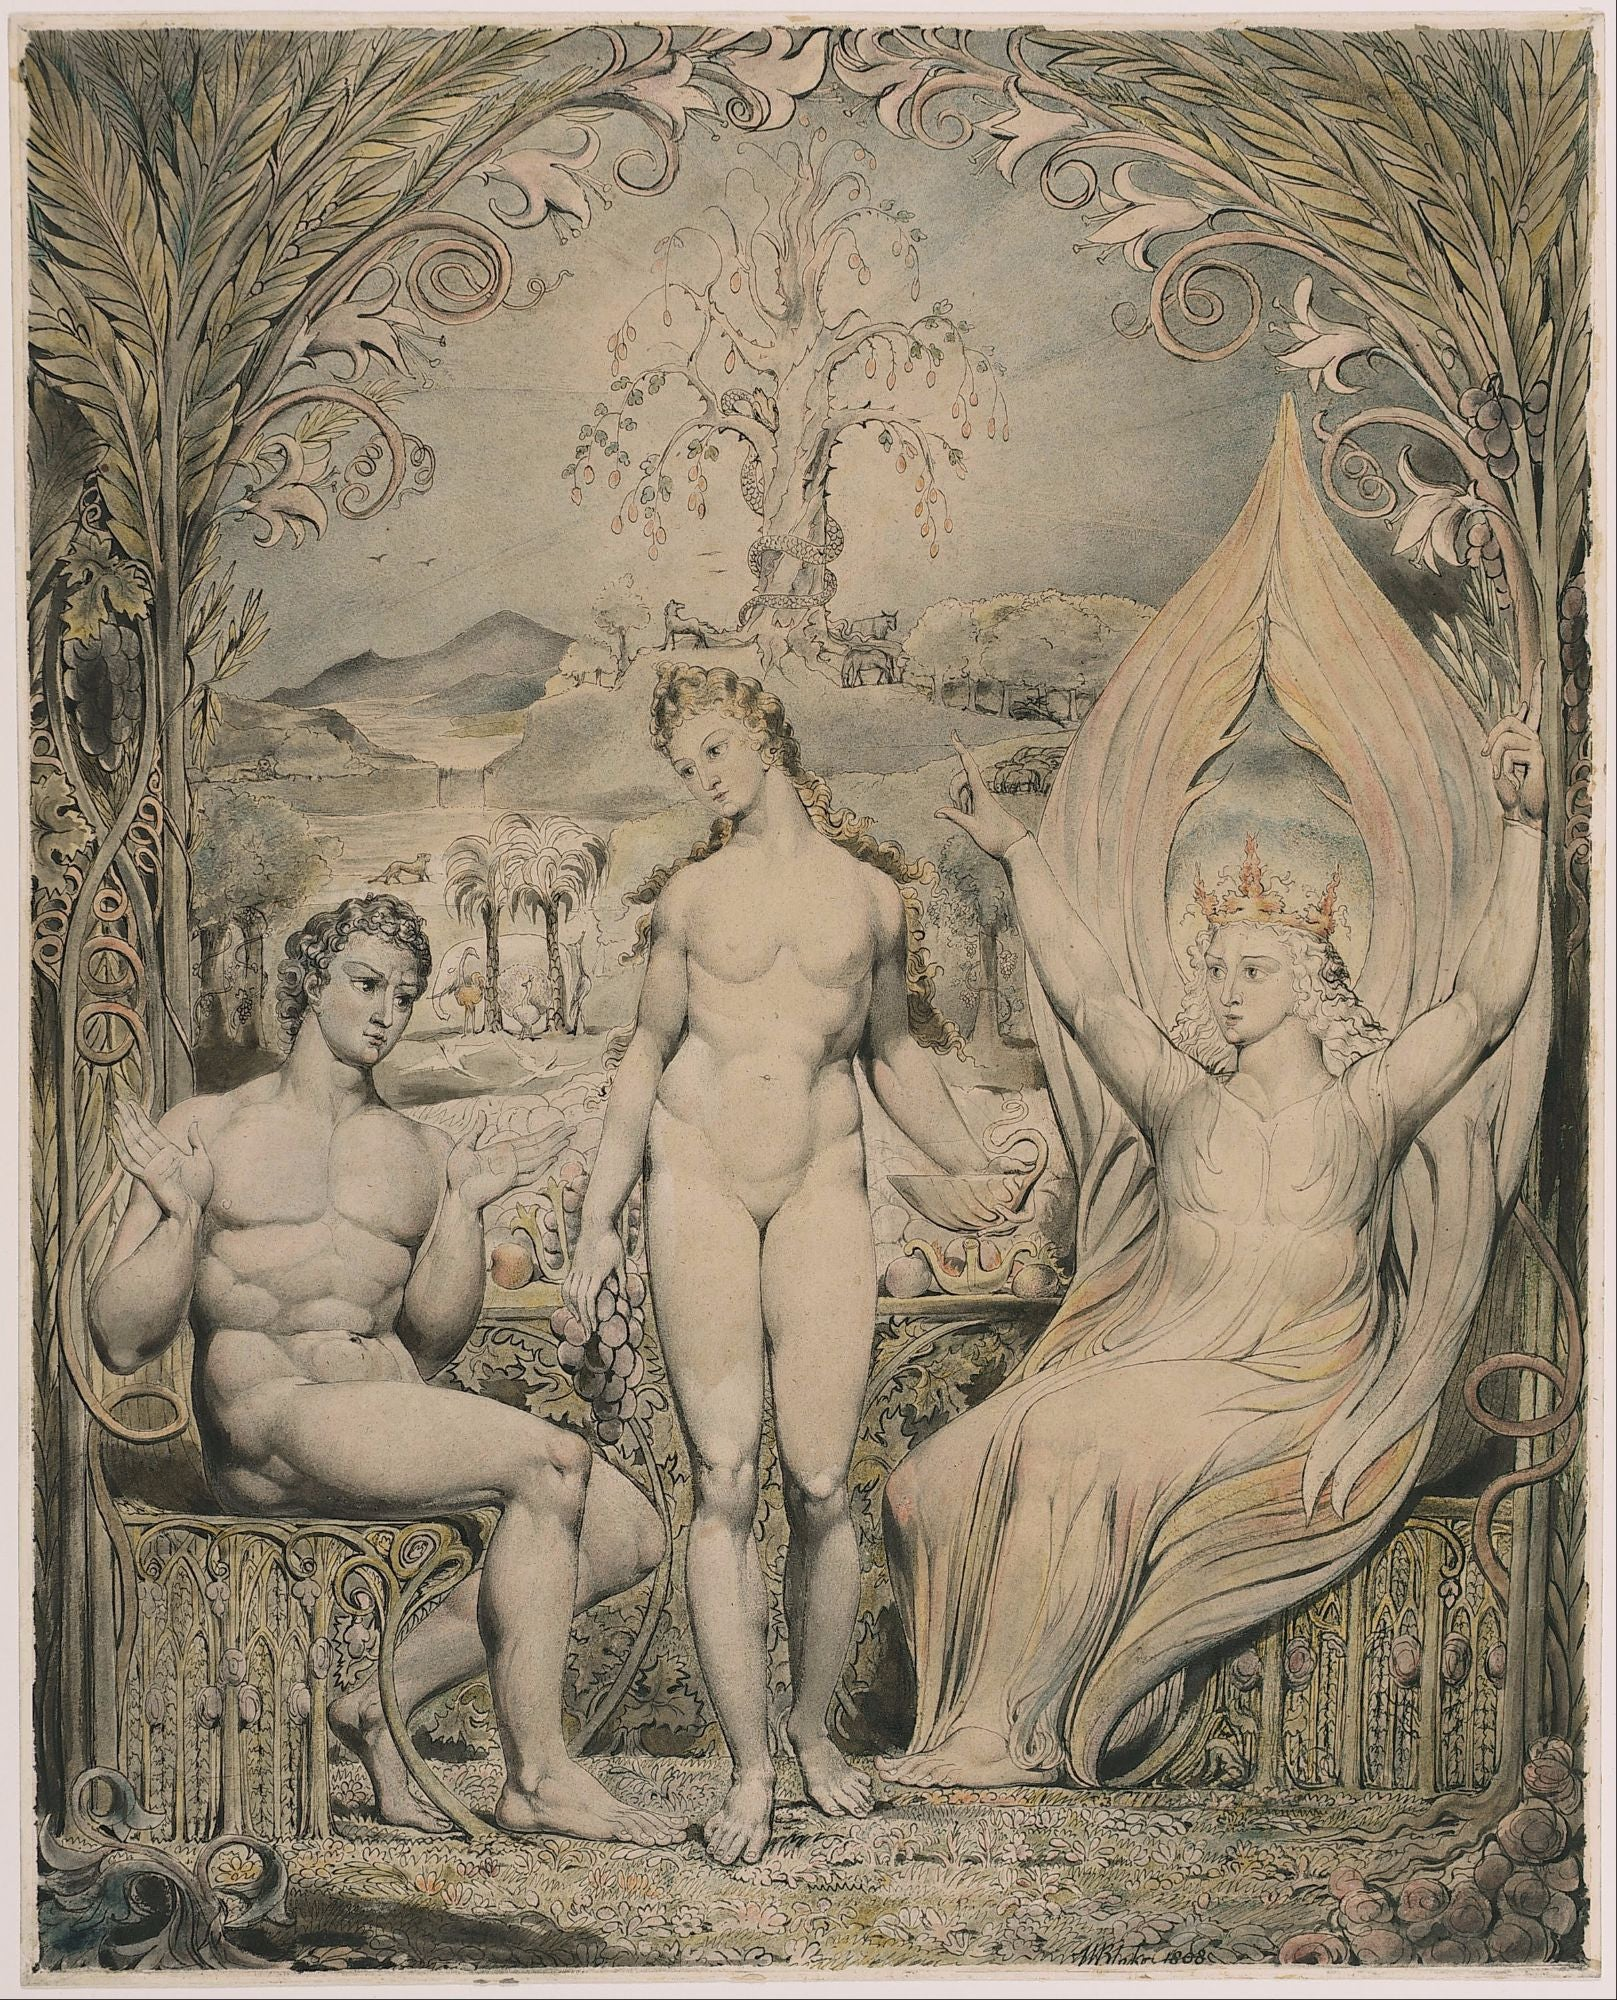 William Blake Paintings | Buy Posters, Frames, Canvas, Digital Art & Large Size Prints Of The Famous Old Master's Artworks